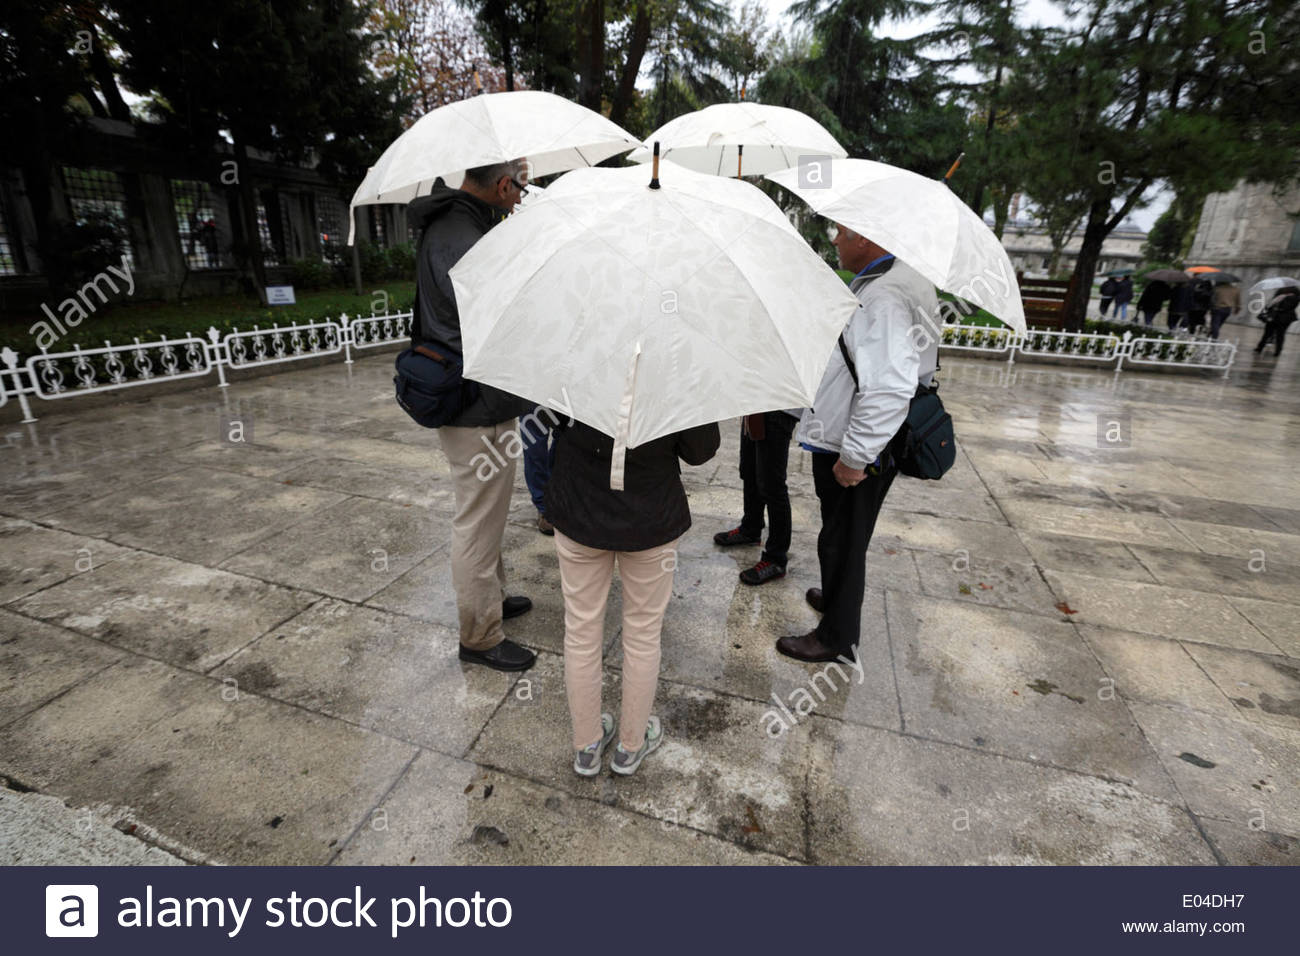 group of people together on a wet rainy day all with same umbrella - Stock Image